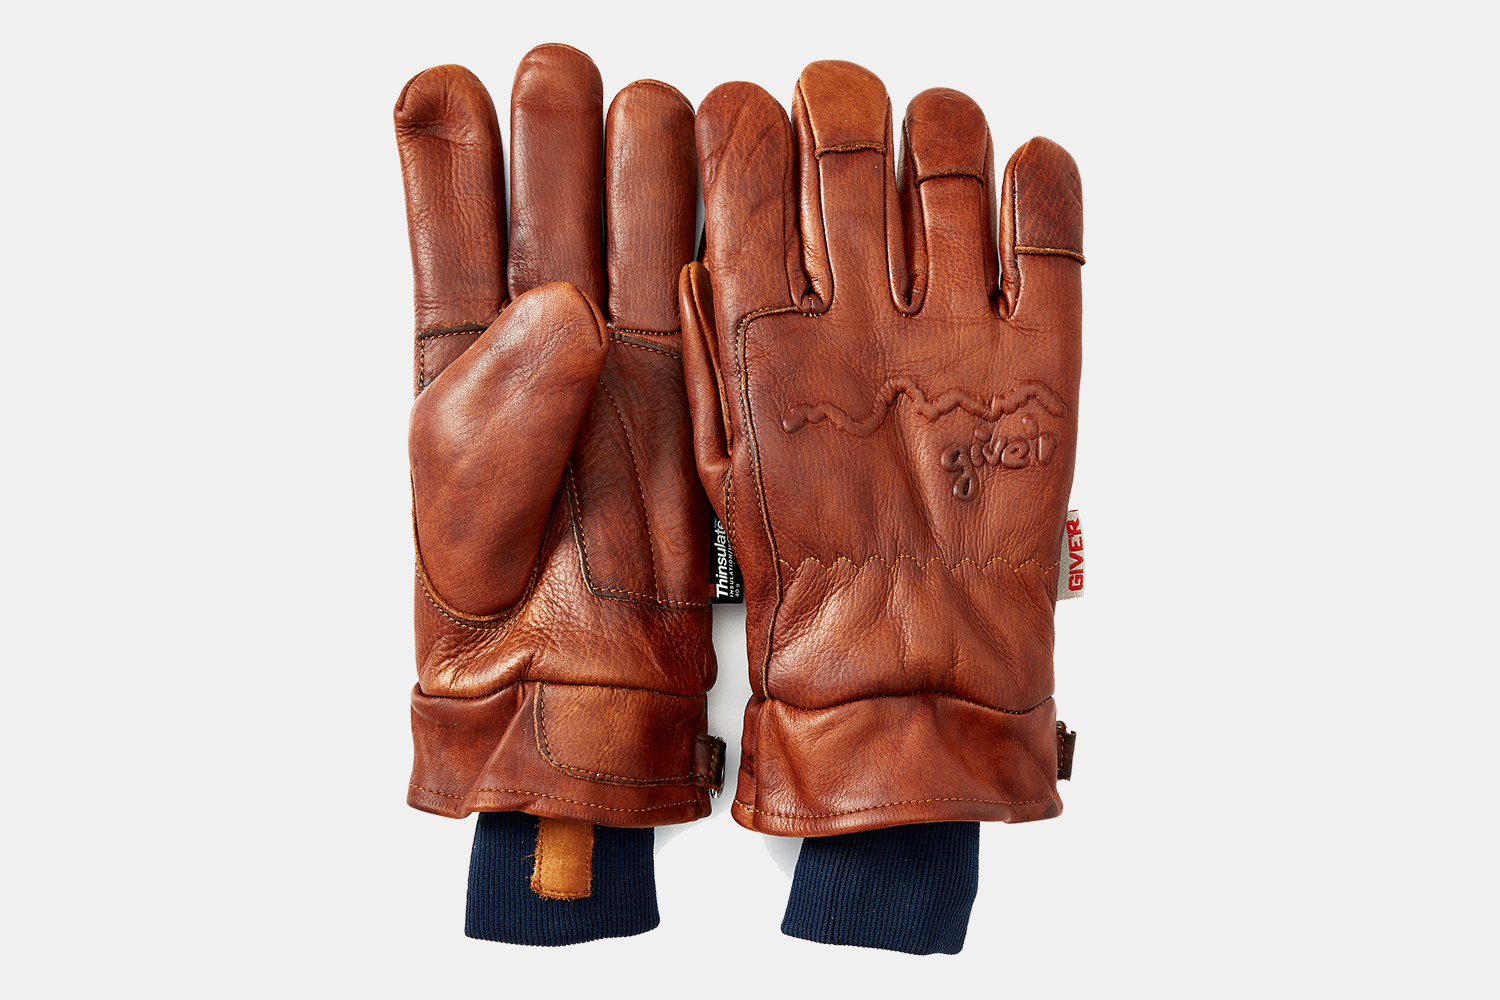 Give'r 4 Season Glove With Wax Coating